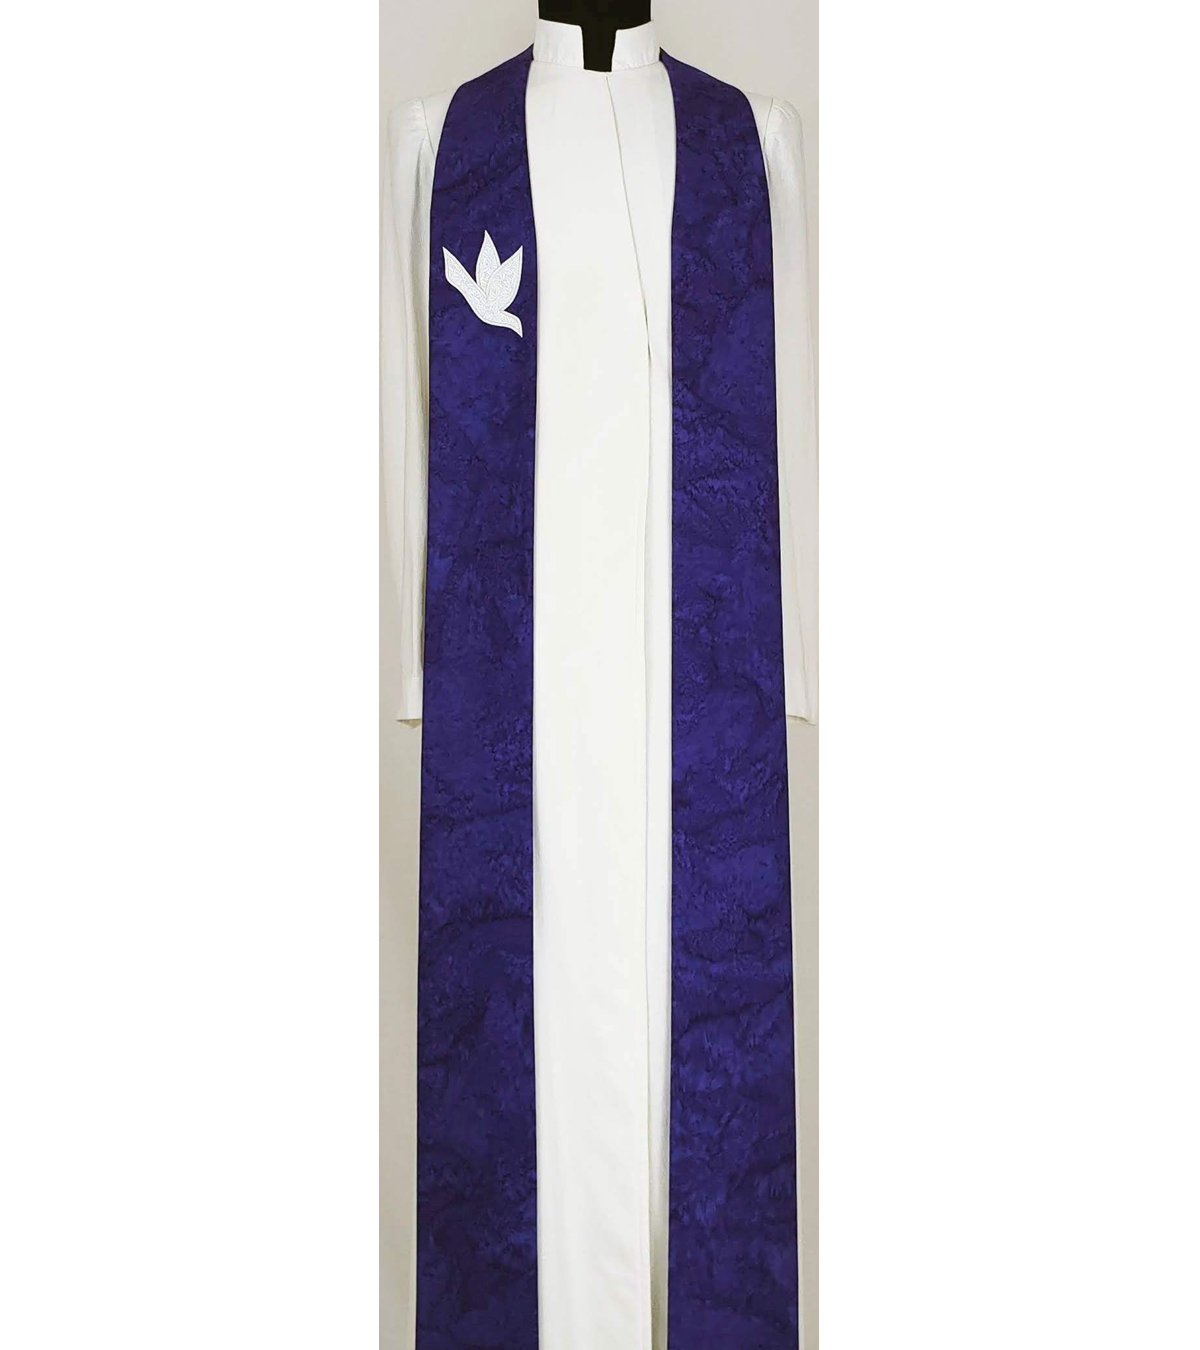 And on Earth, Peace: Purple Clergy Stole for Advent with Dove Design